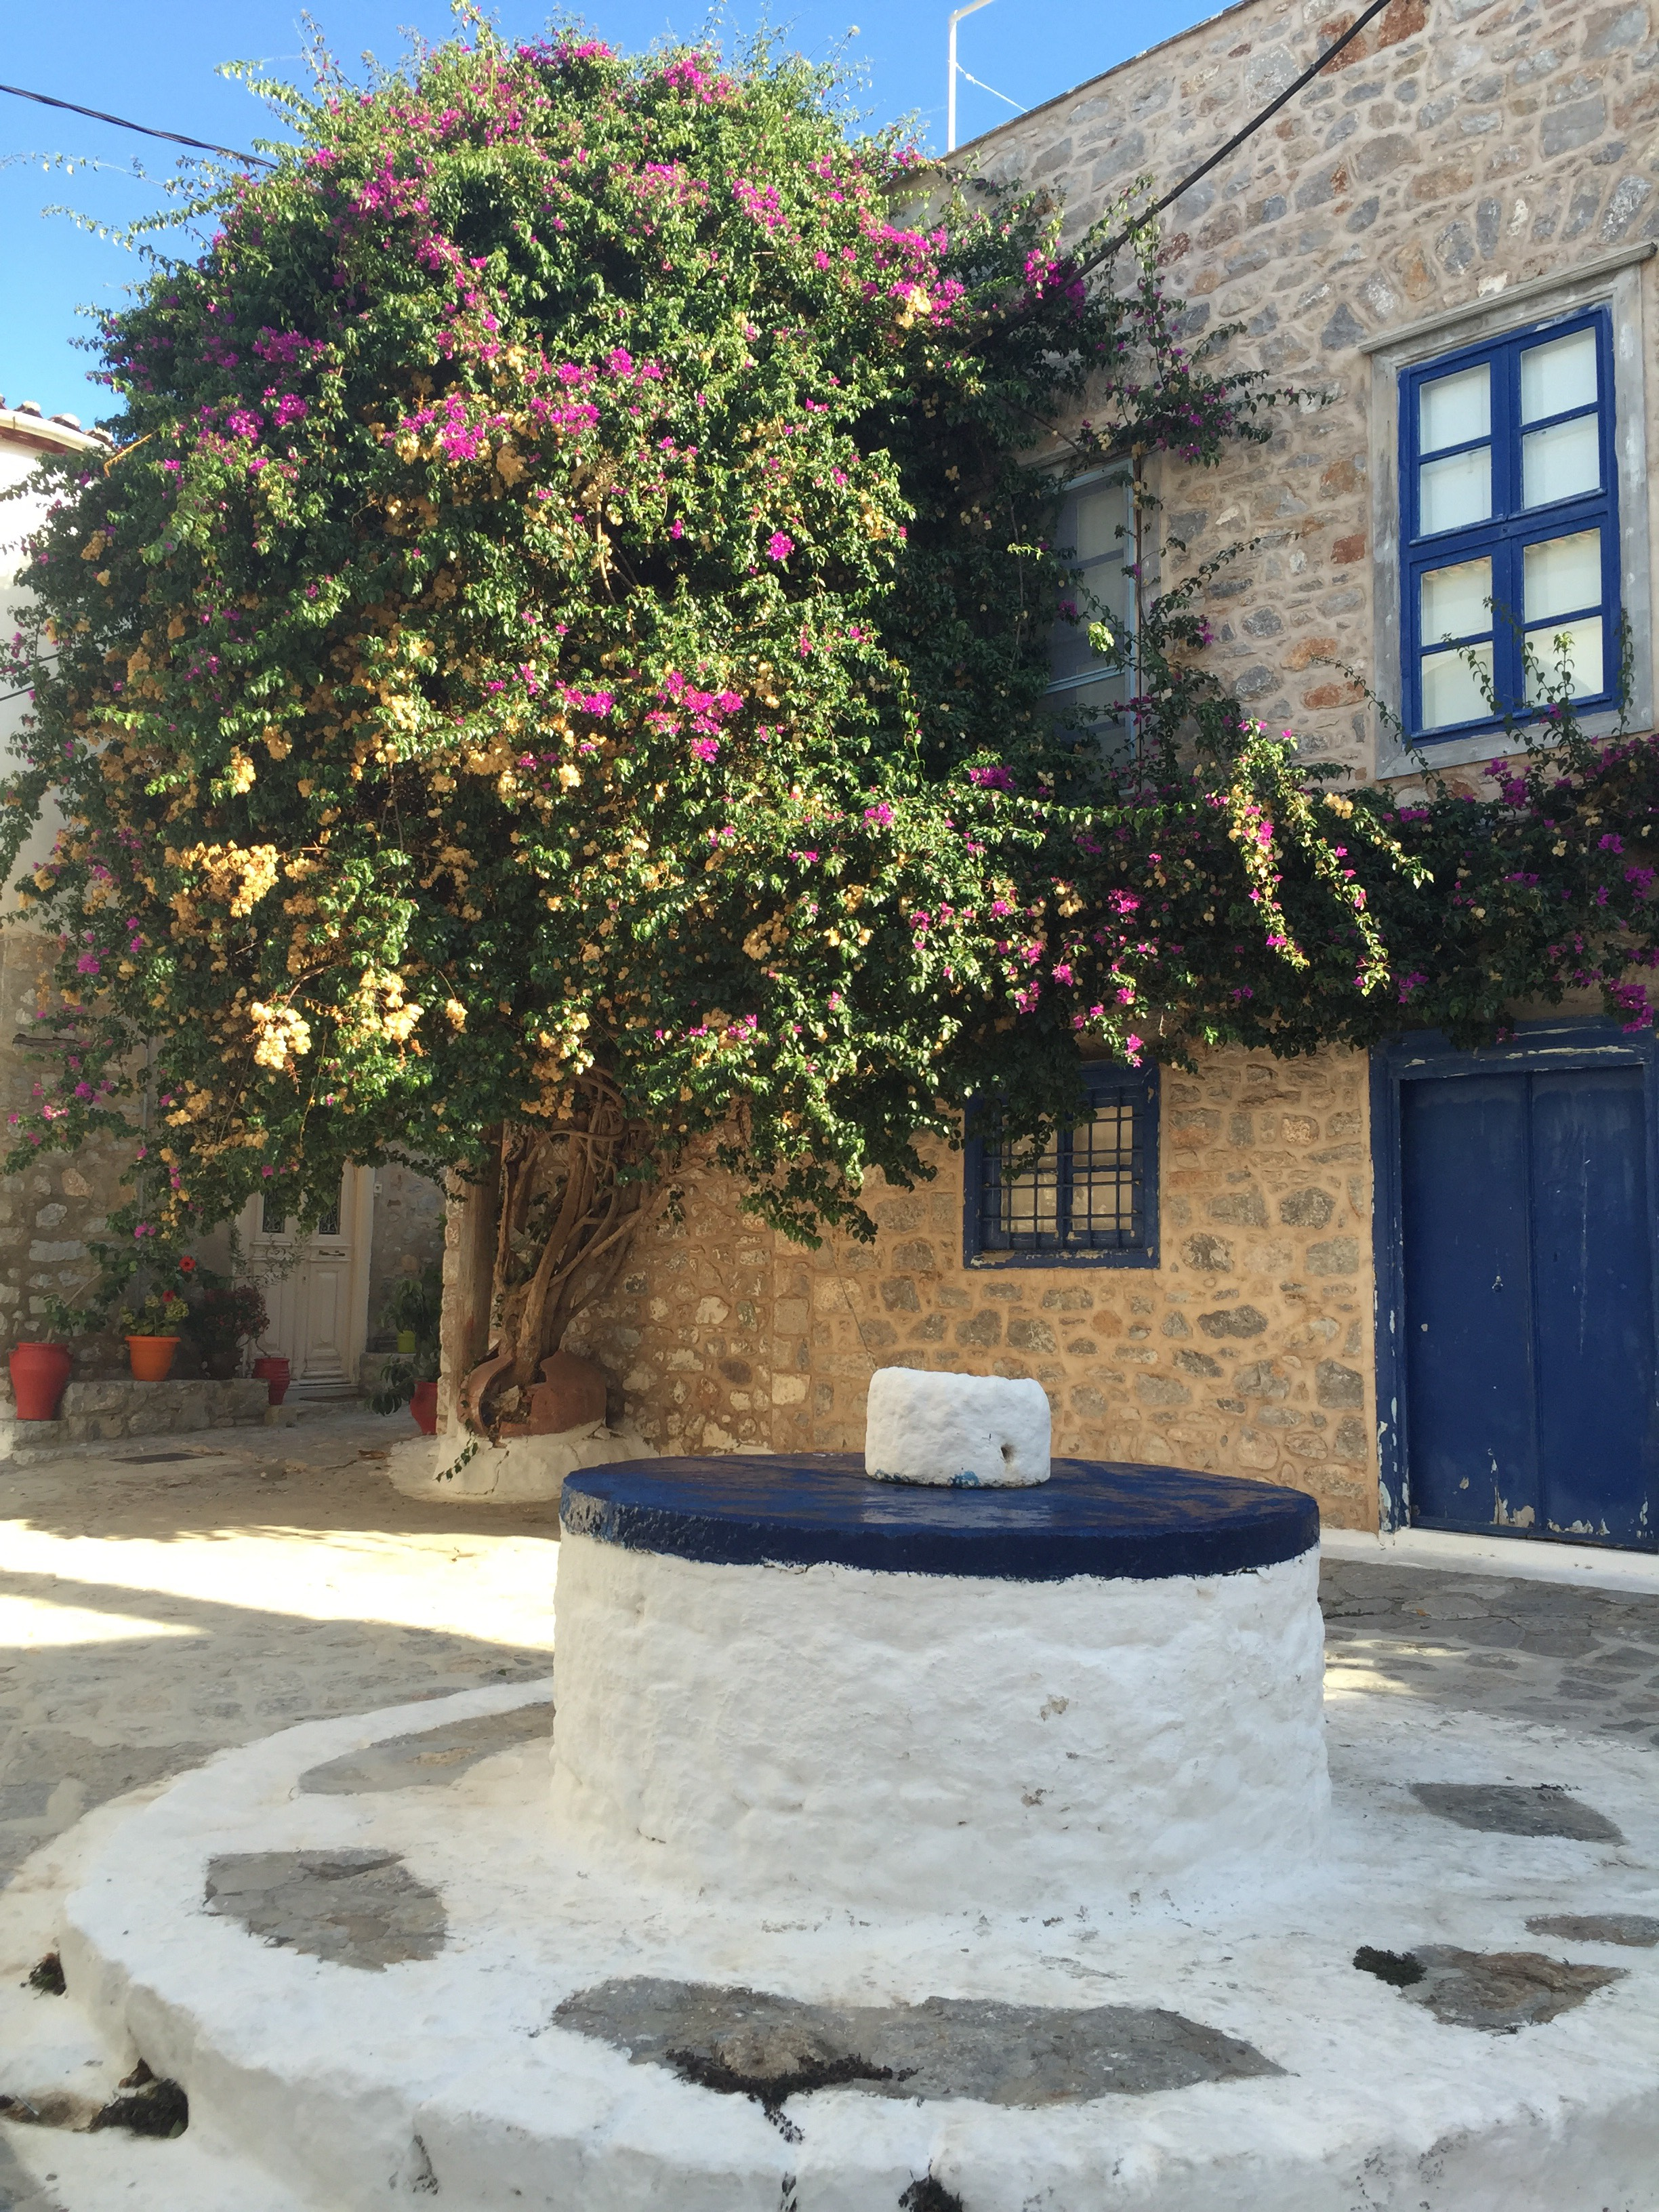 The house by the well. Home of authors George Johnston and Charmian Clift, Hydra, Greece. Image provided by Susan Johnson.